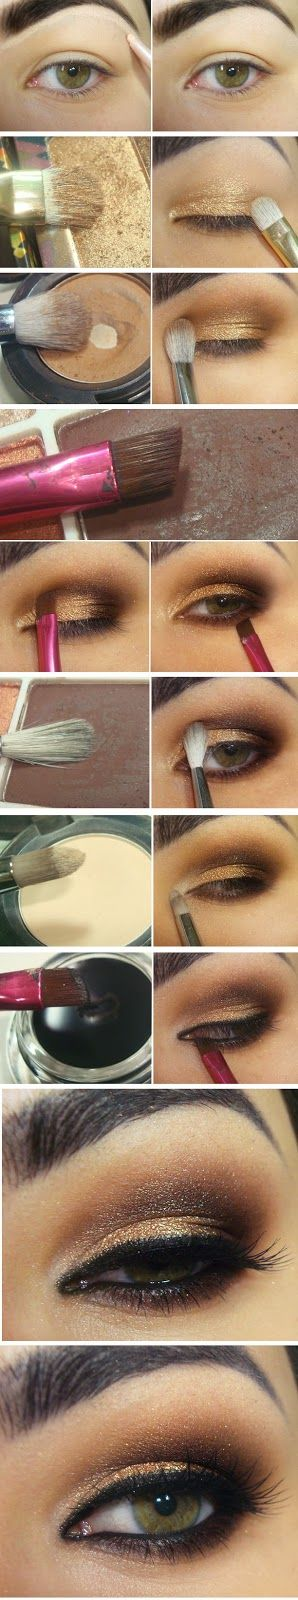 Gold and Brown Inspired Makeup Tutorials - Step by Step / Best LoLus Makeup Fashion #coupon code nicesup123 gets 25% off at www.Provestra.com www.Skinception.com and www.leadingedgehealth.com